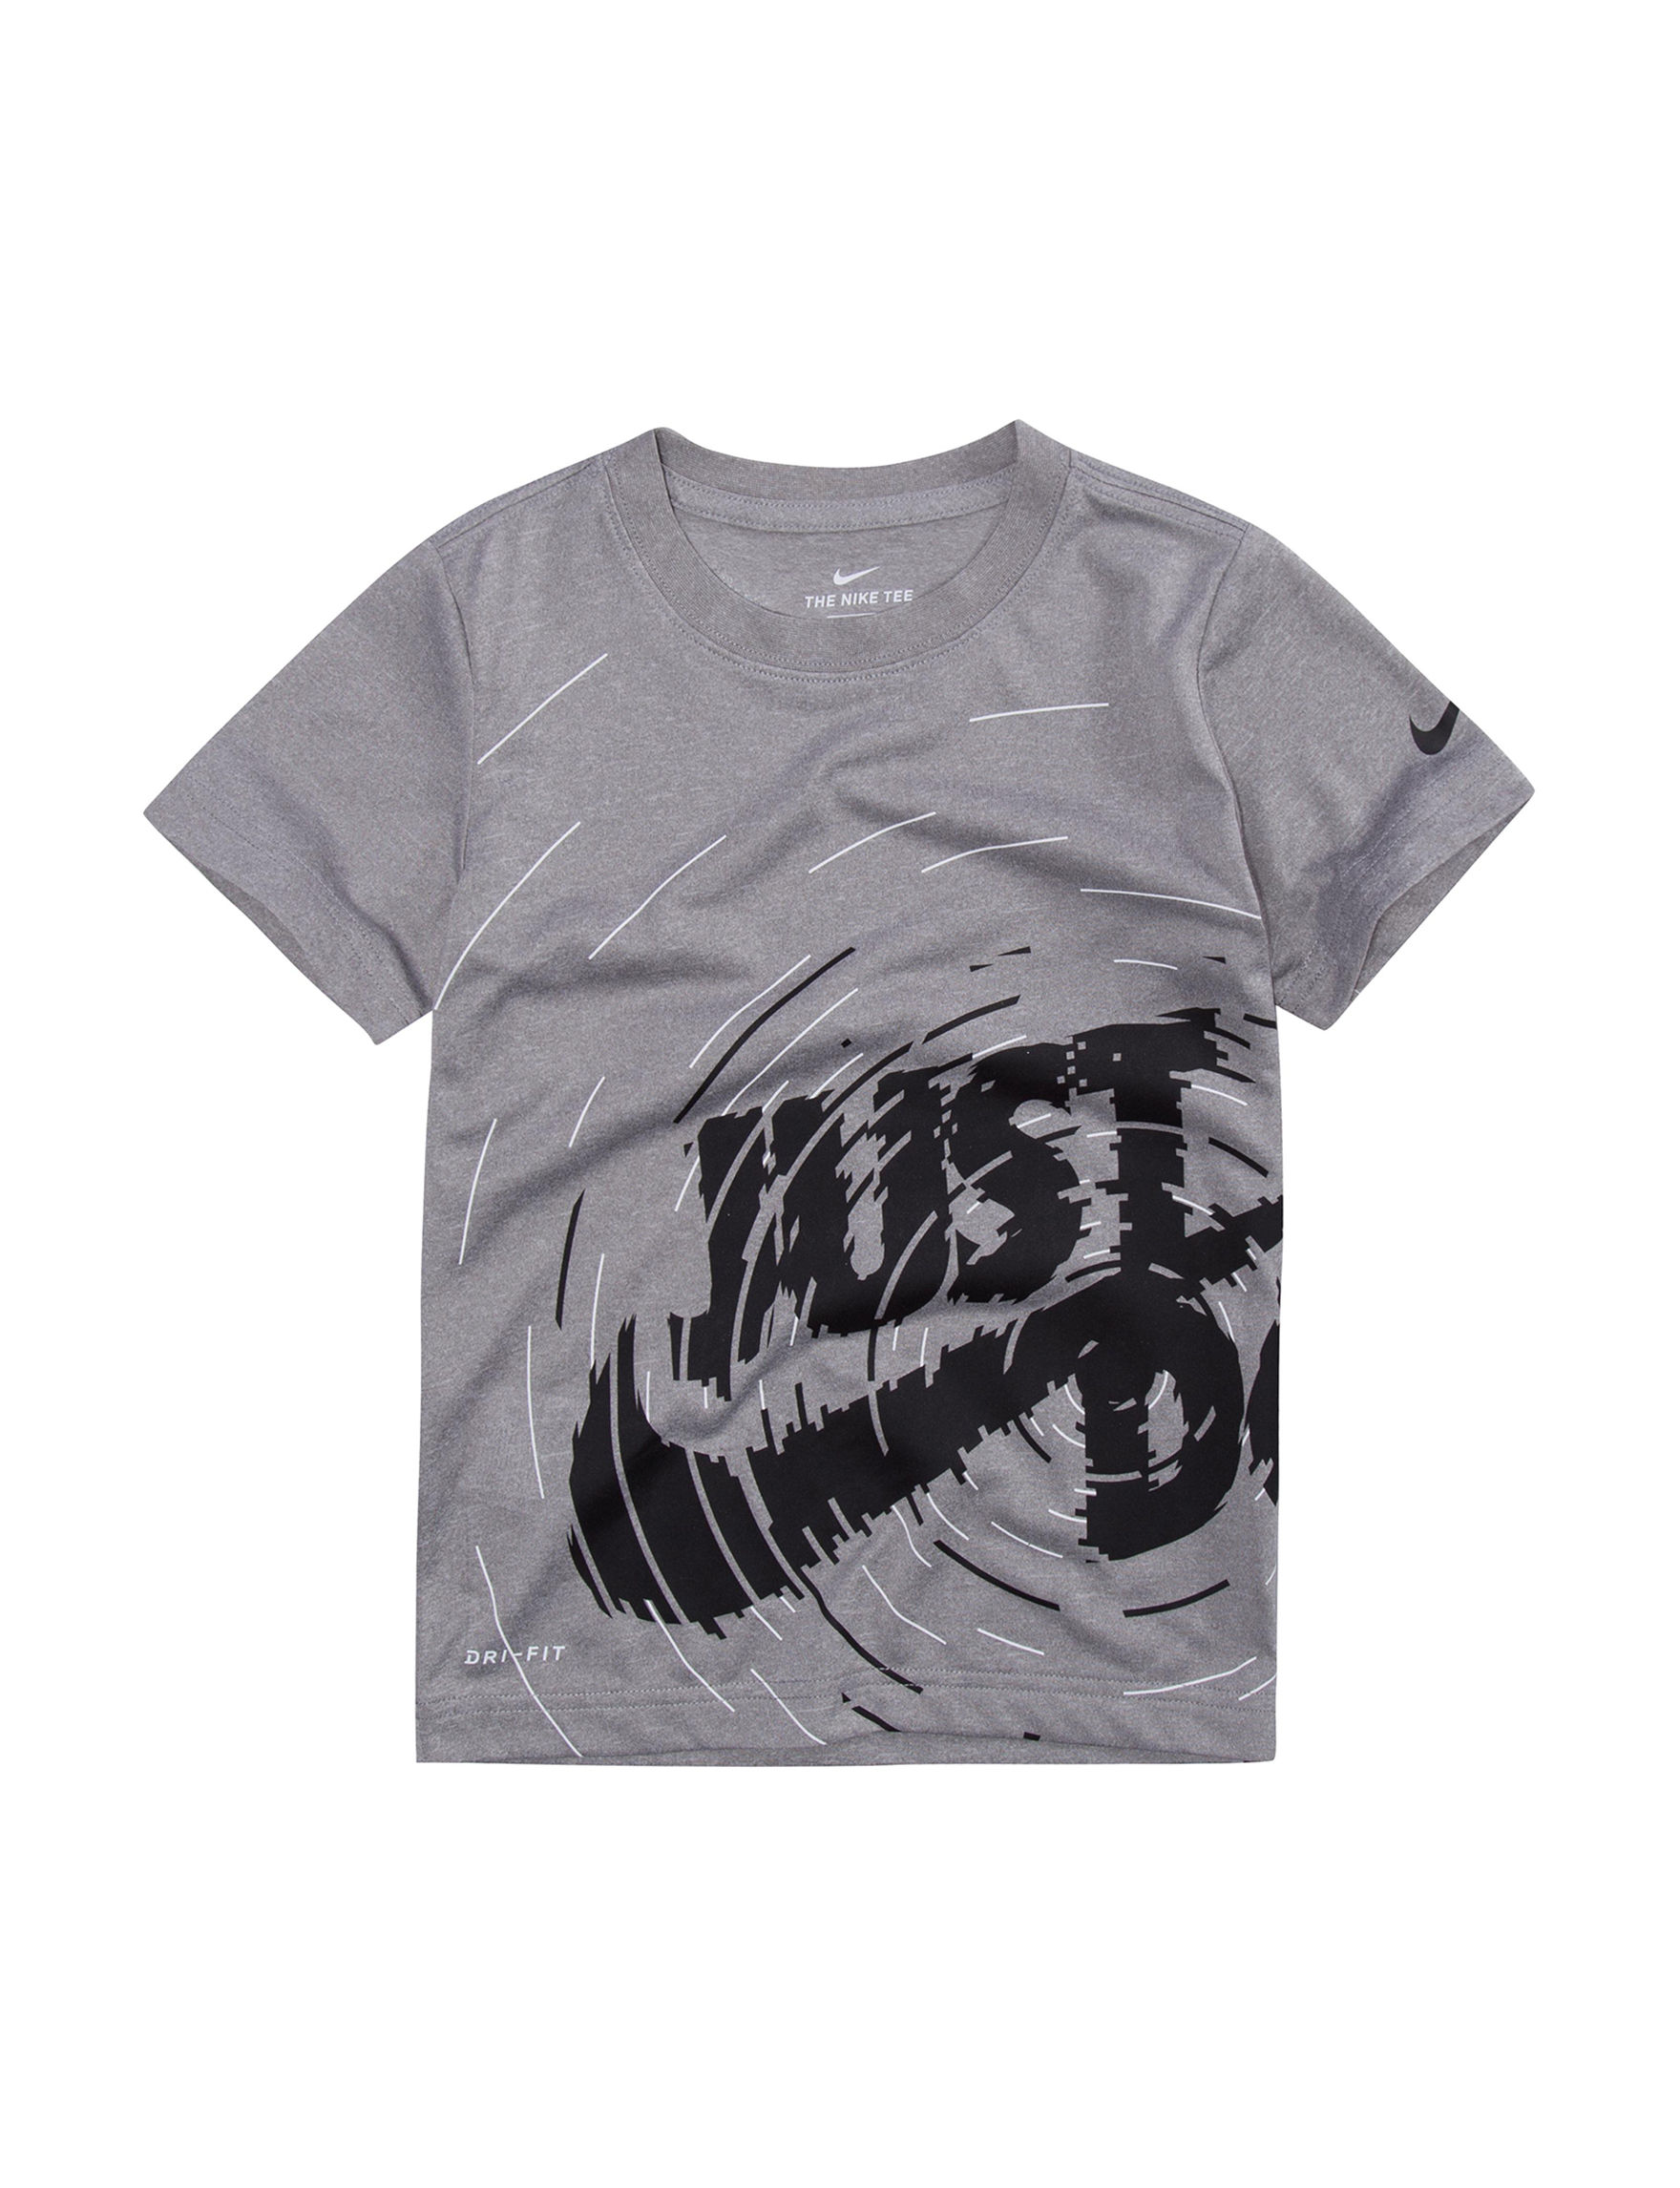 ef93c7ca Nike Dry Just Do It Ripple Graphic T-shirt - Toddler Boys   Stage Stores